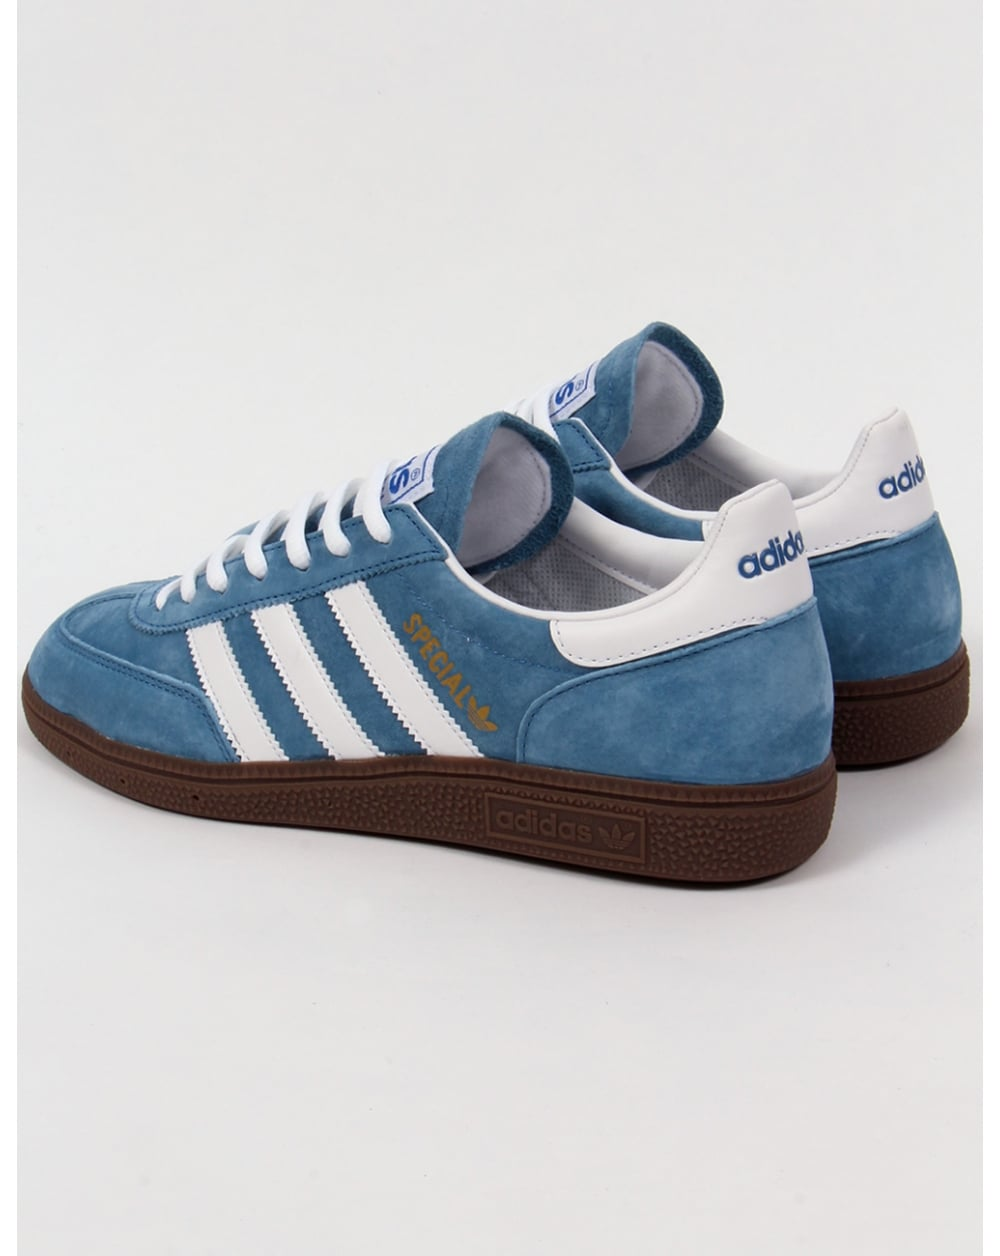 adidas handball spezial trainers royal blue white. Black Bedroom Furniture Sets. Home Design Ideas